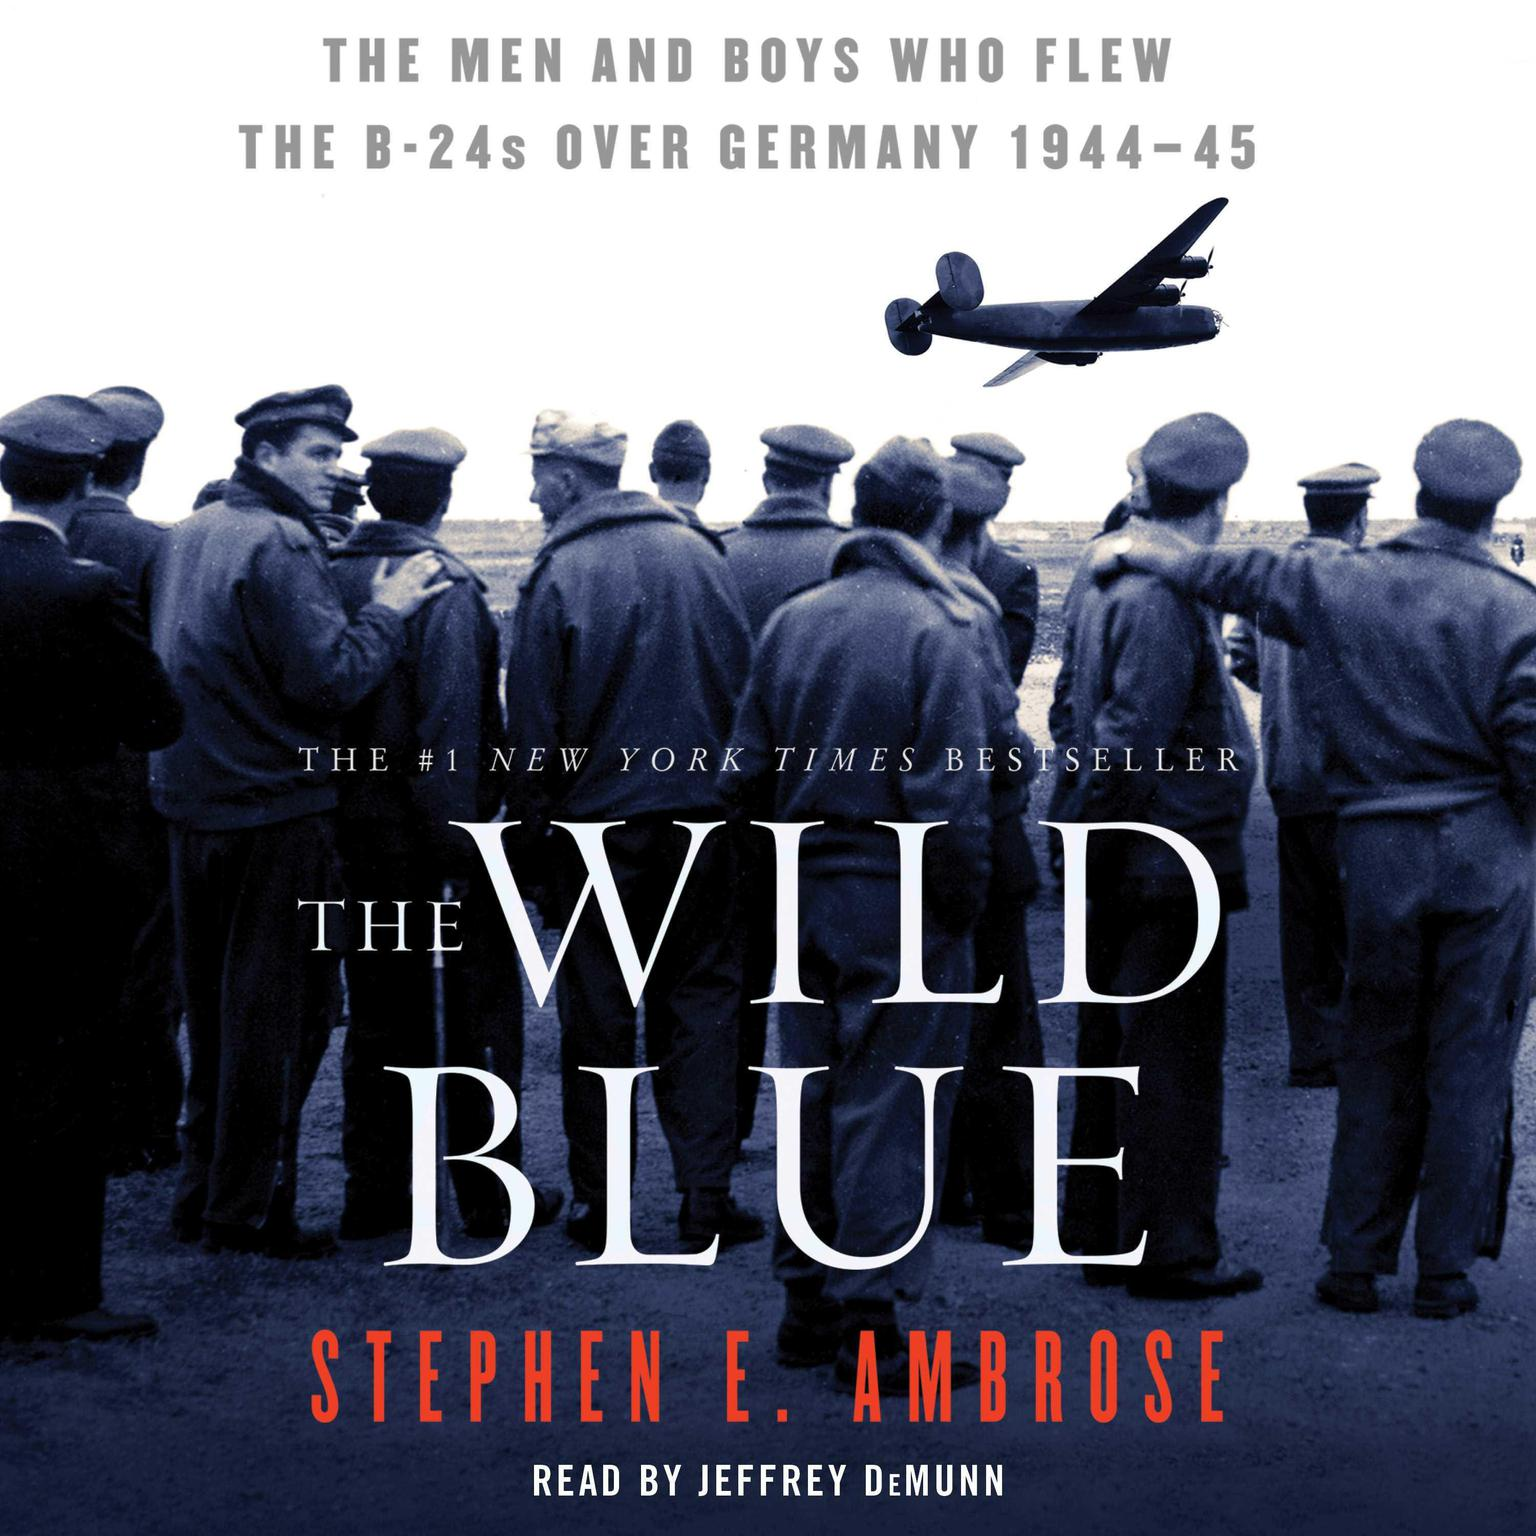 Printable The Wild Blue: The Men and Boys Who Flew the B-24s Over Germany 1944-45 Audiobook Cover Art